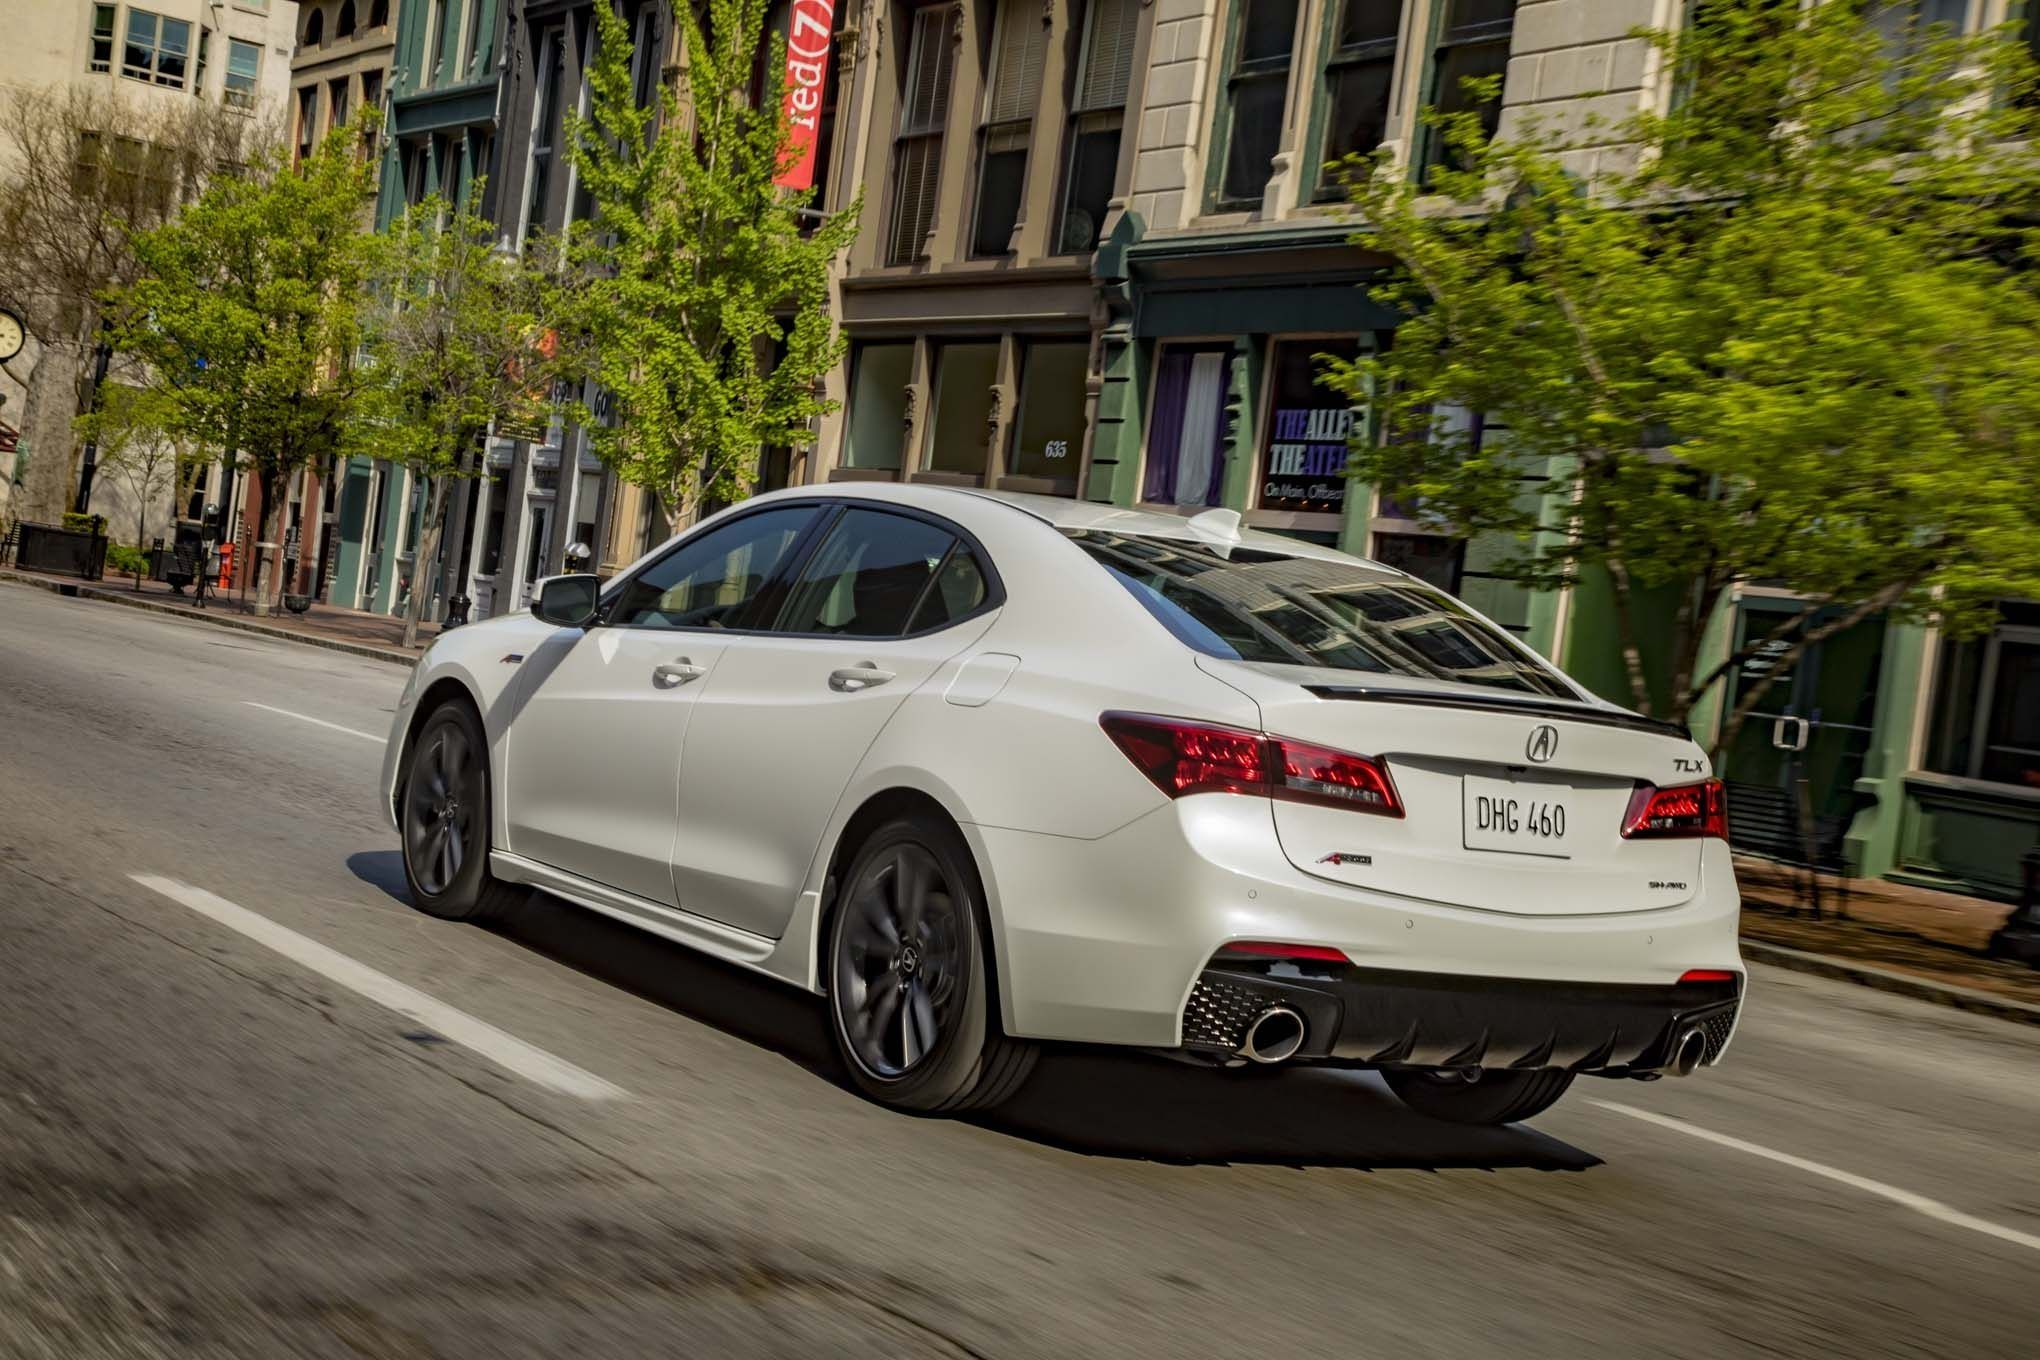 2018 Acura Tlx Sh Awd A Spec First Drive Review Release Date And Specs Acura Tlx Acura Awd